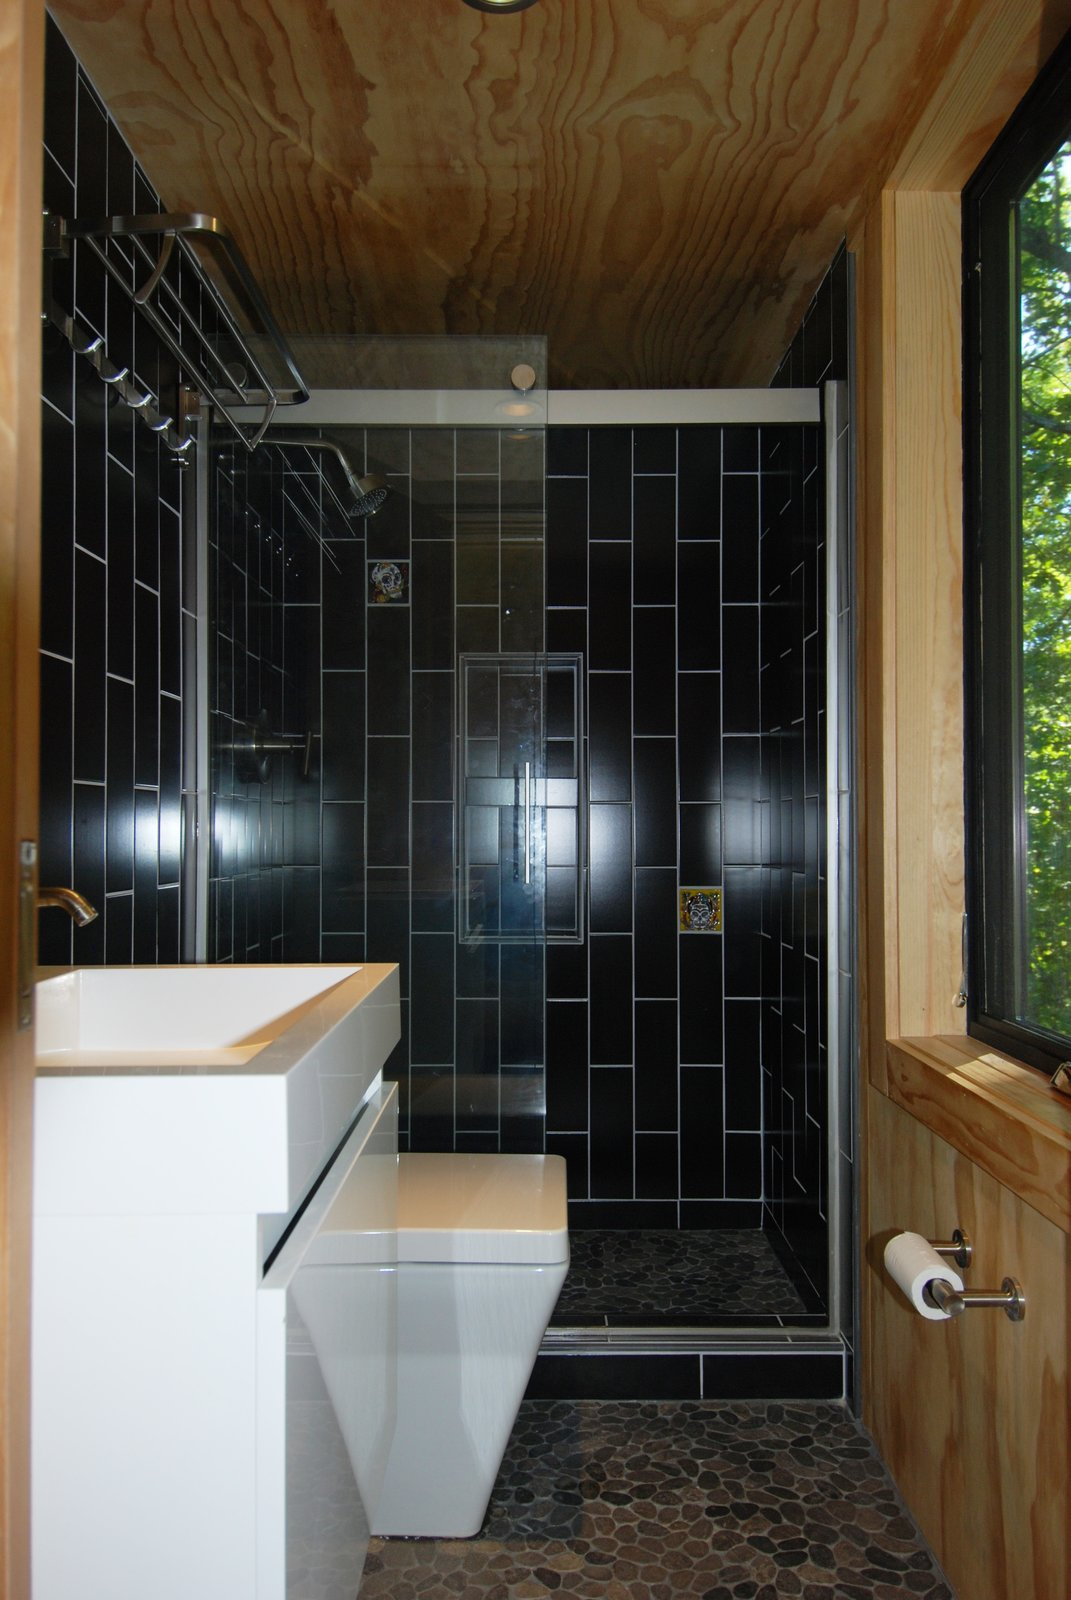 Bath Room, Enclosed Shower, Vessel Sink, and Subway Tile Wall  Photo 15 of 15 in What's the Best Way to Save Space in a Small Bathroom?